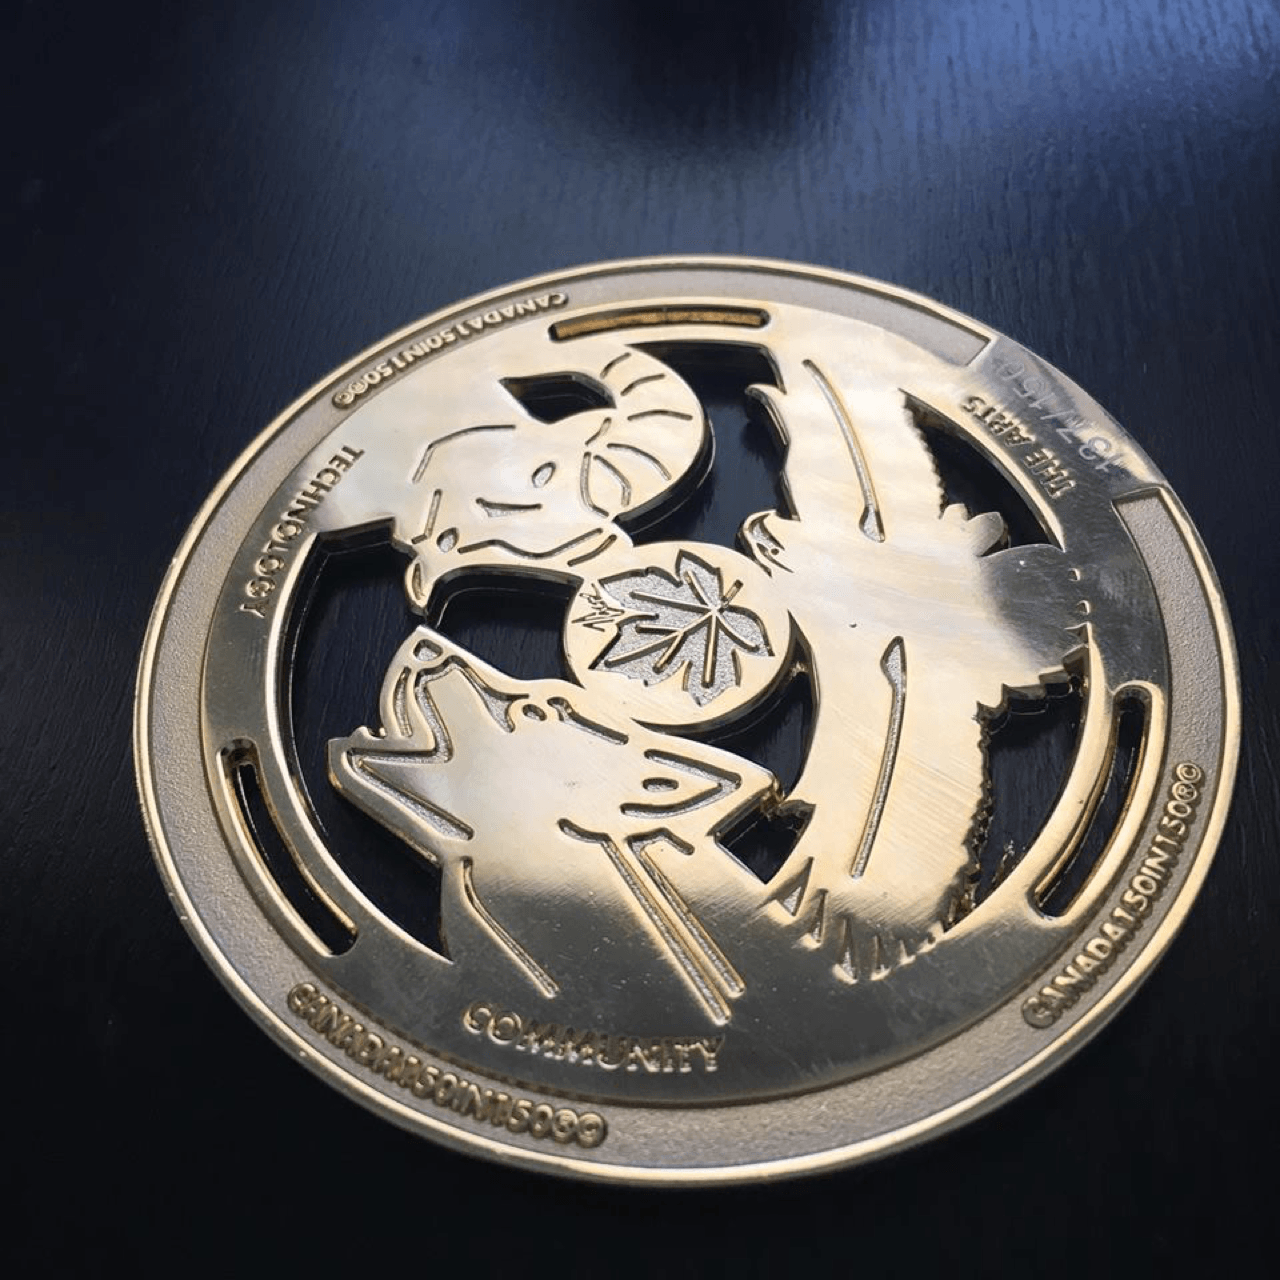 Pacesetter Celebrates Canada's 150th Birthday! Medallion image